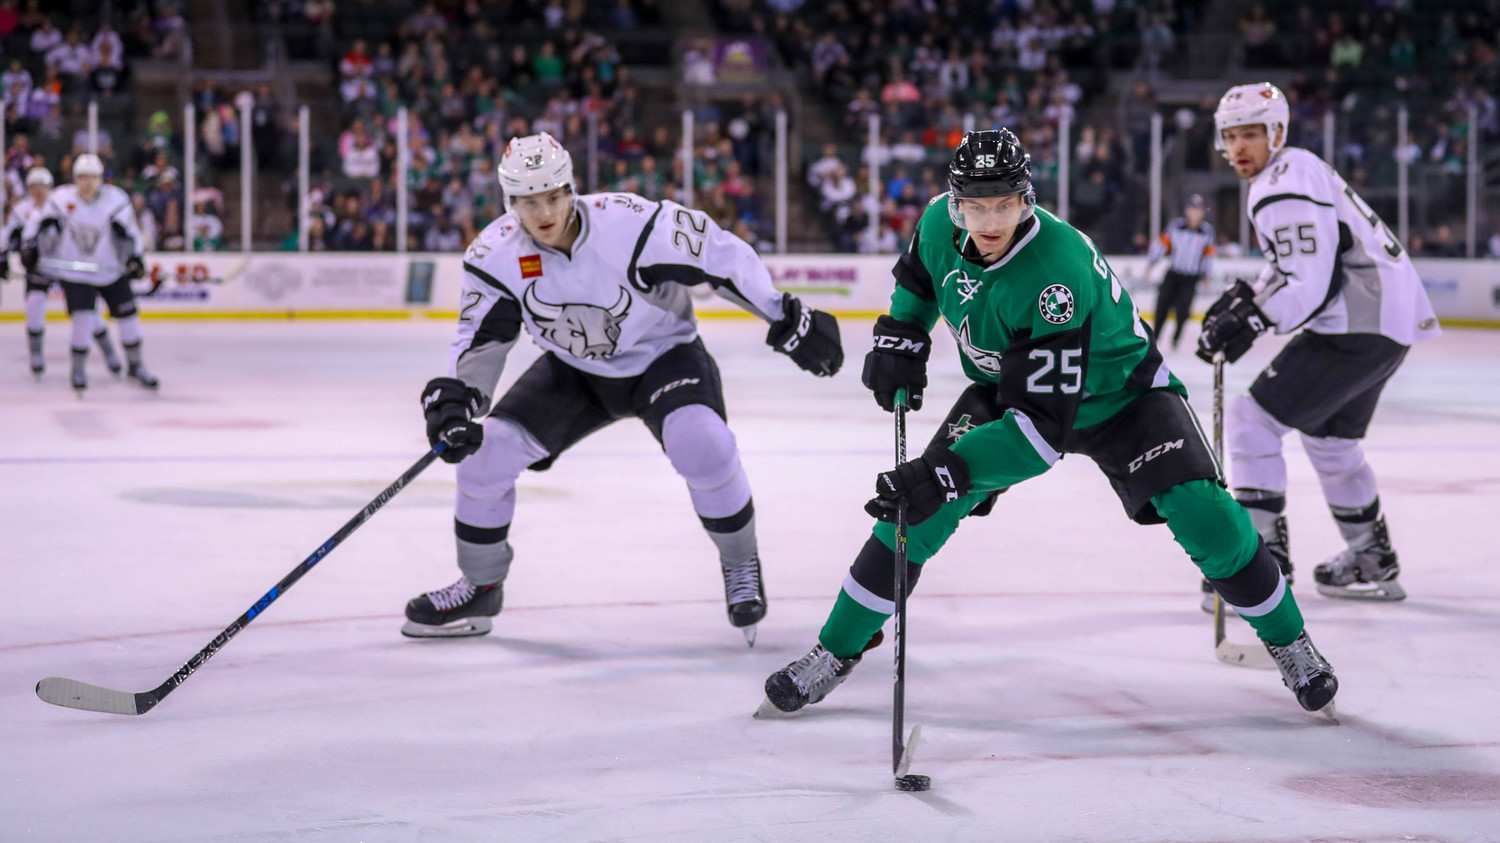 Denis Gurianov and the Texas Stars lost 4-3 to the San Antonio Rampage in the regular season finale Saturday night.